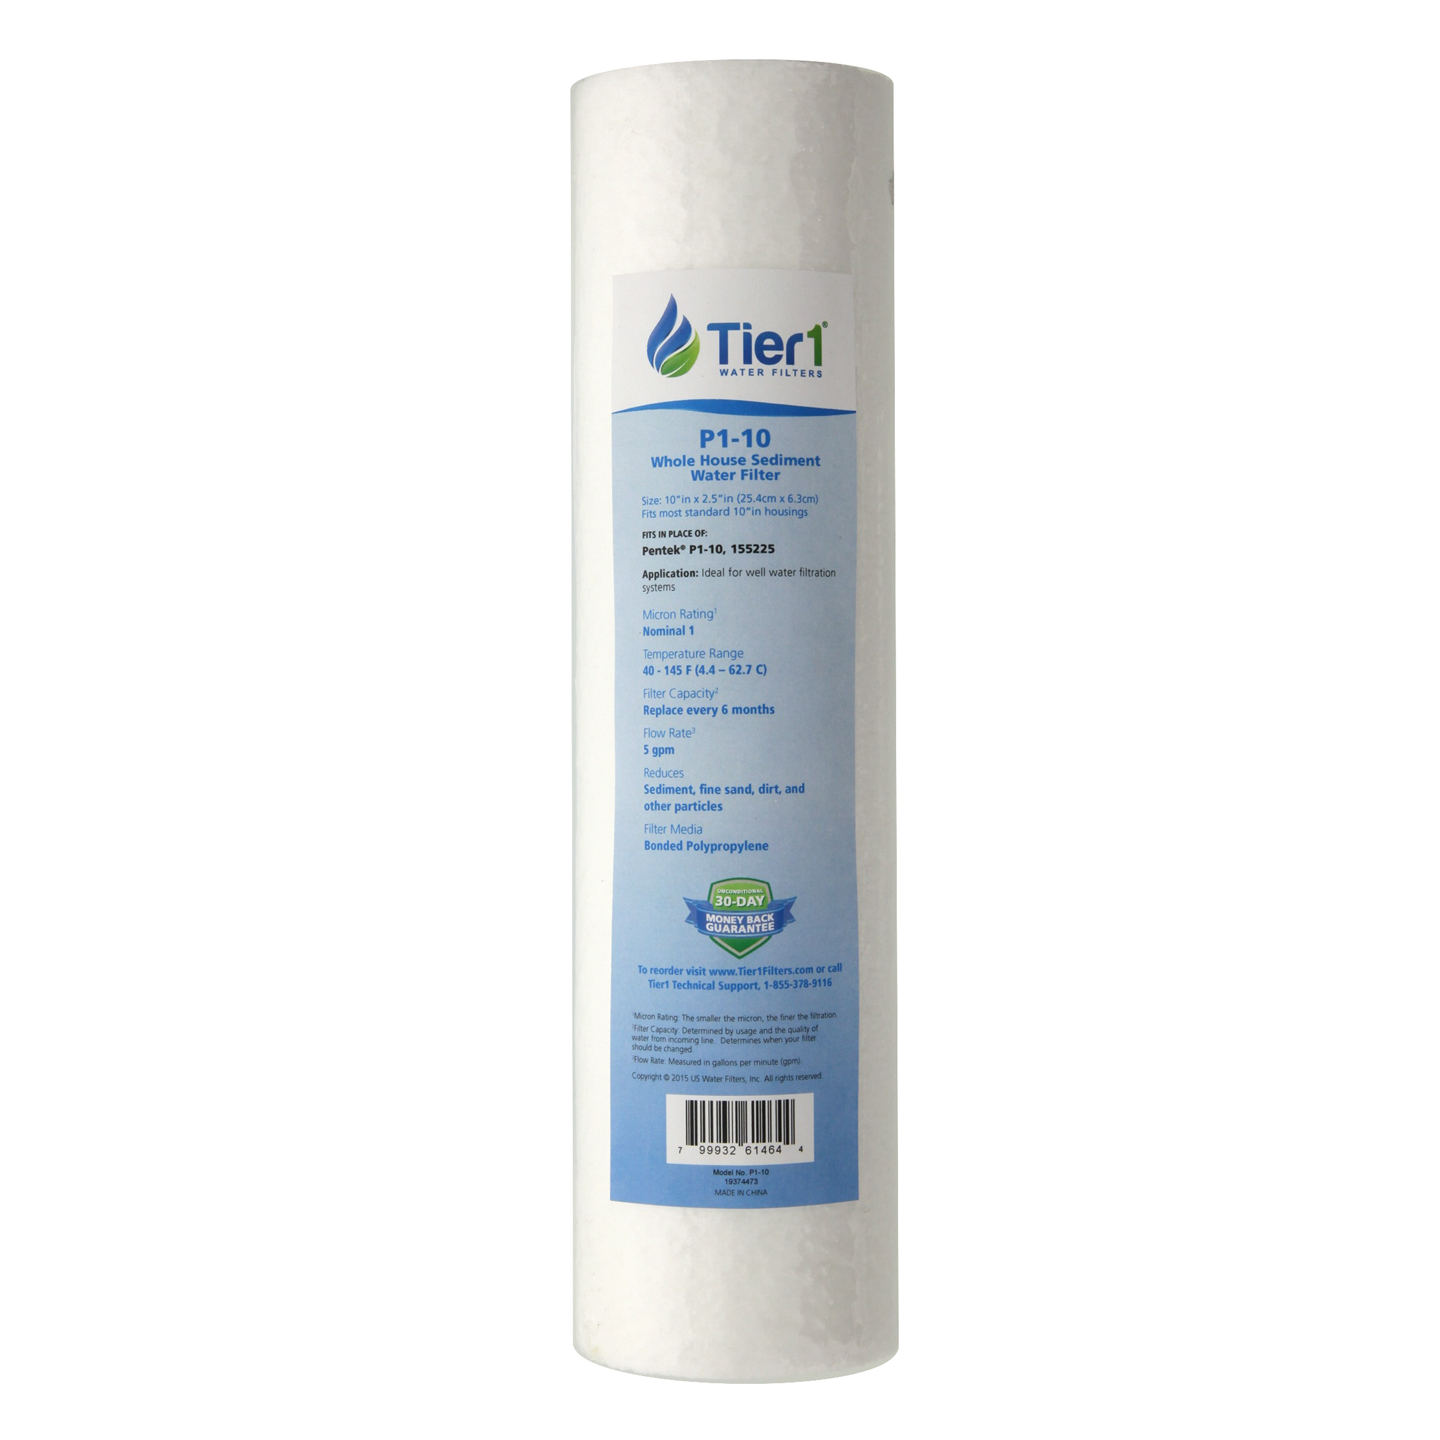 Pentek P1 Comparable Whole House Sediment Water Filter by Tier1